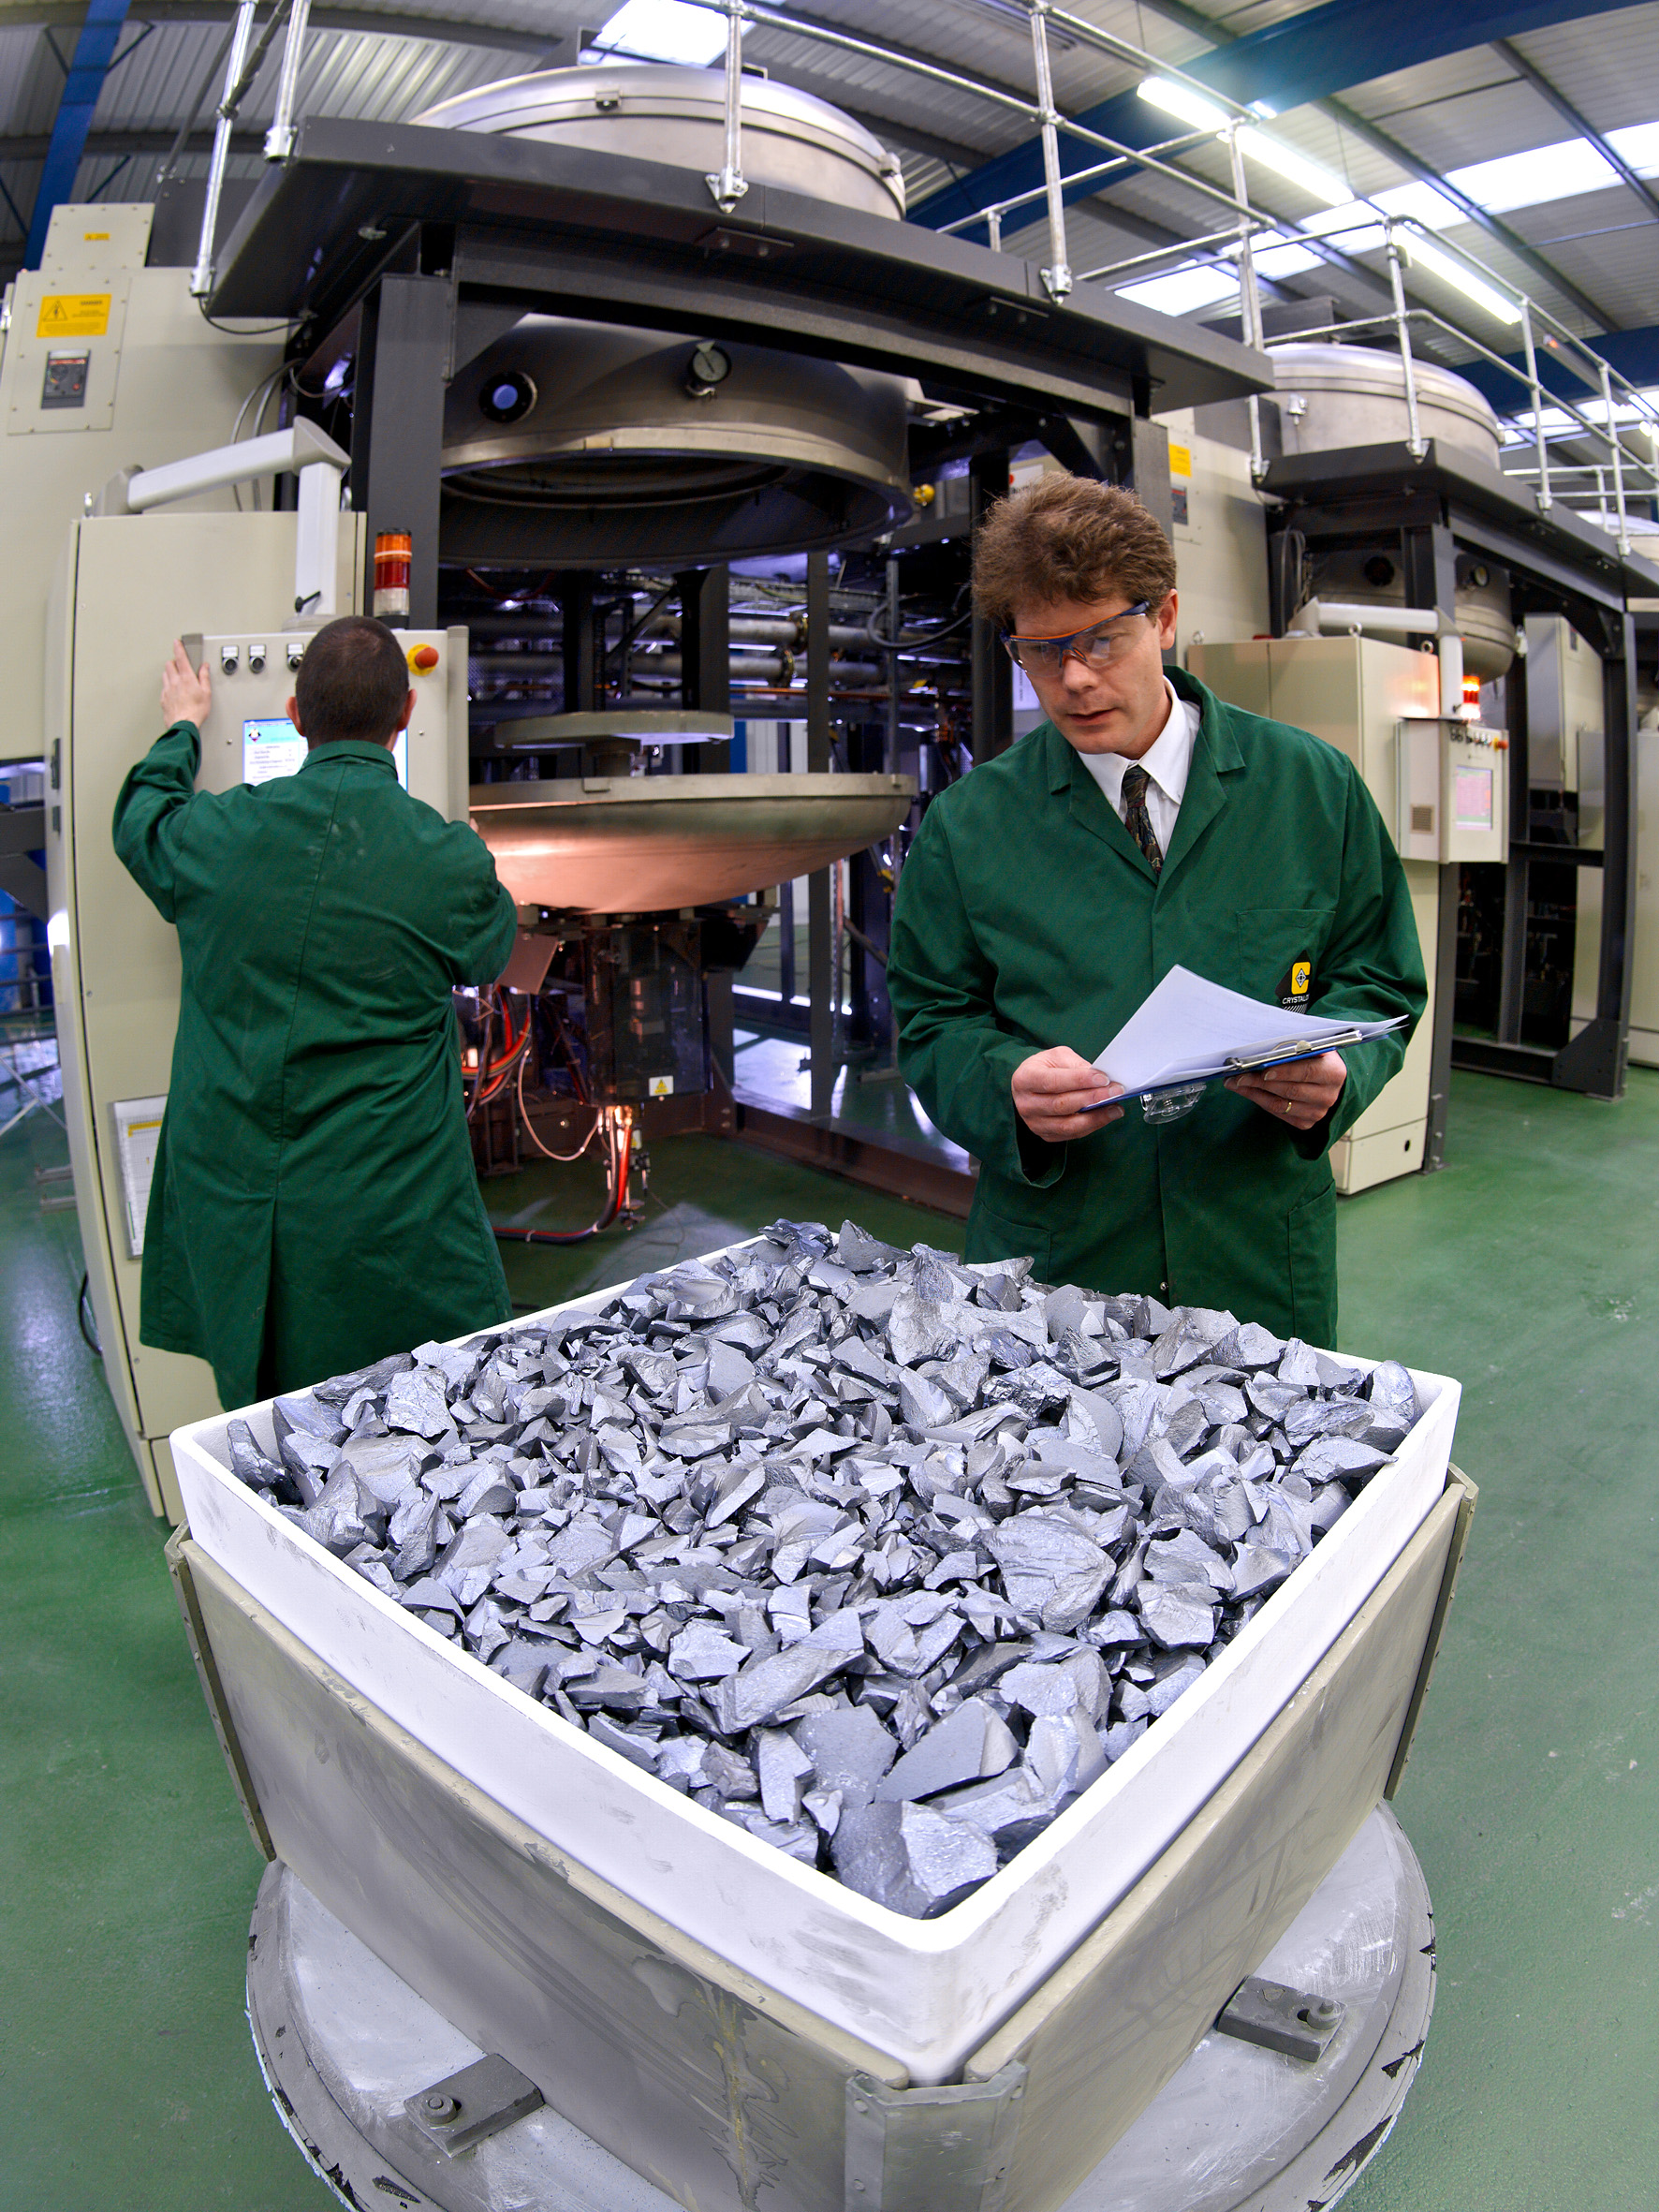 The company had previously planned to phase out the production of multicrystalline ingots using its DSS furnaces during 2017. Image: PV Crystalox